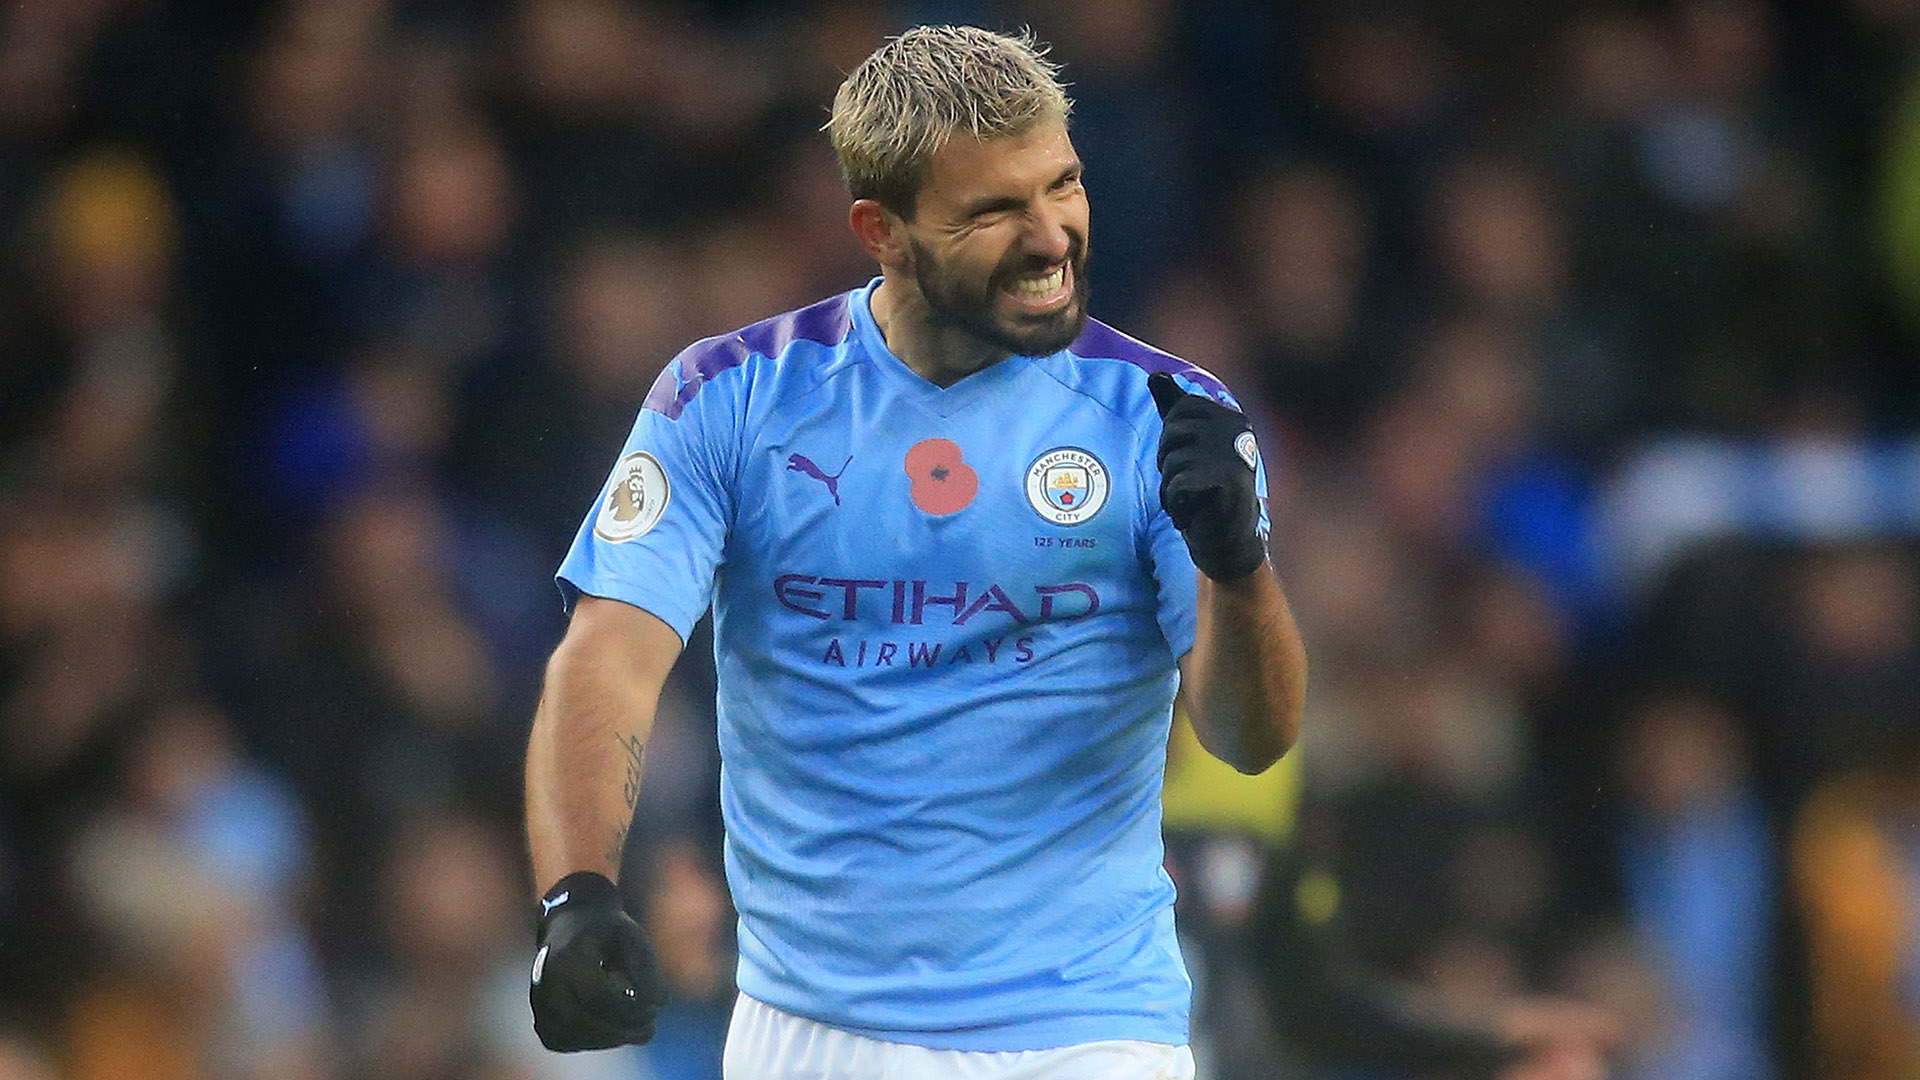 Guardiola full of praise for 'incredible' Aguero as Man City star looks to equal Henry's Premier League record